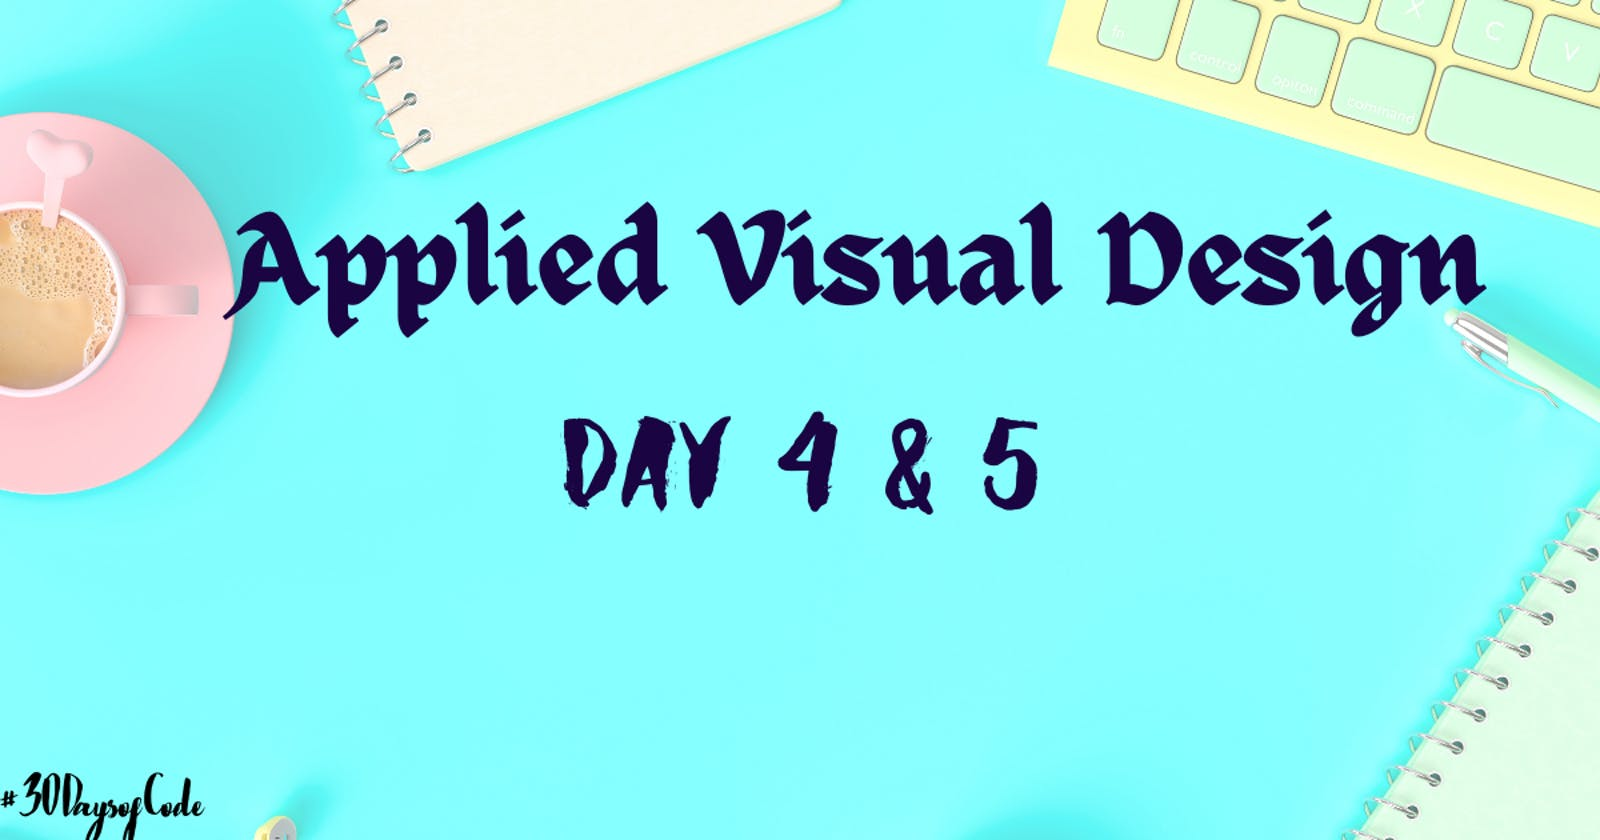 Applied Visual Design - Day 4 & 5